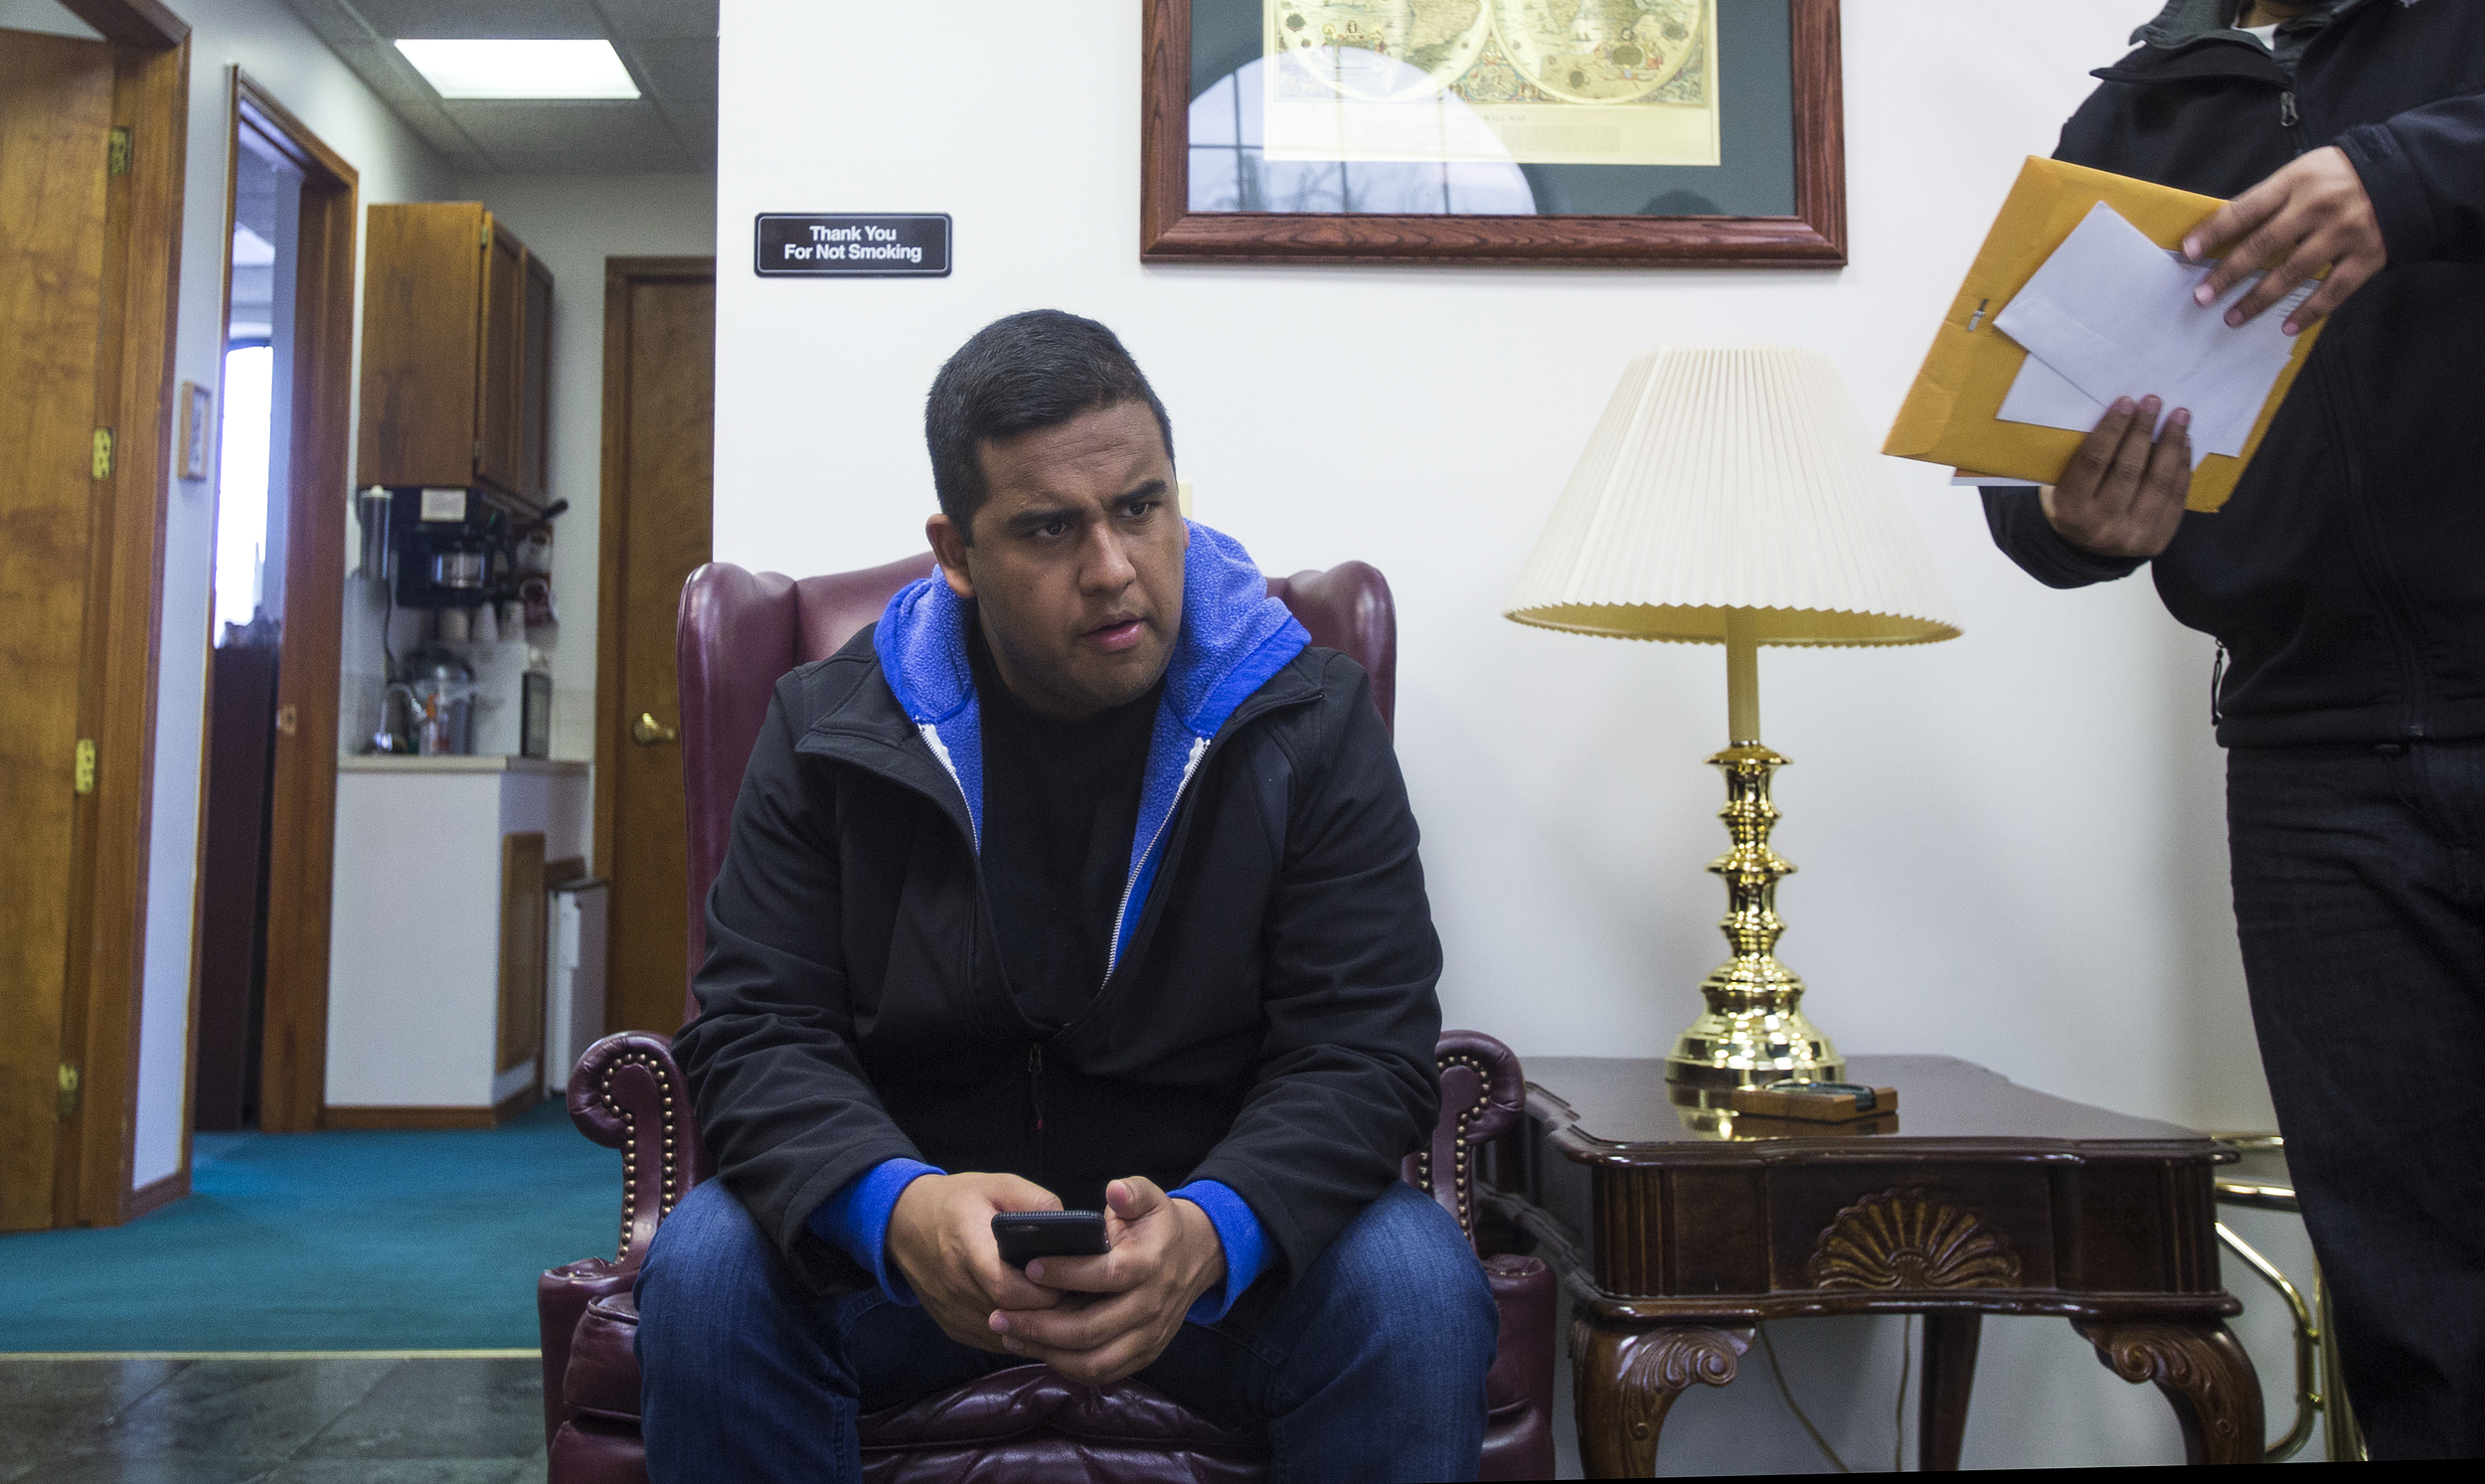 For the fourth time in two months, Edwin Silva waits in the lobby to finalize an I-589 application, withholding of removal, with his immigration lawyer's assistant at the main office in Dearborn.